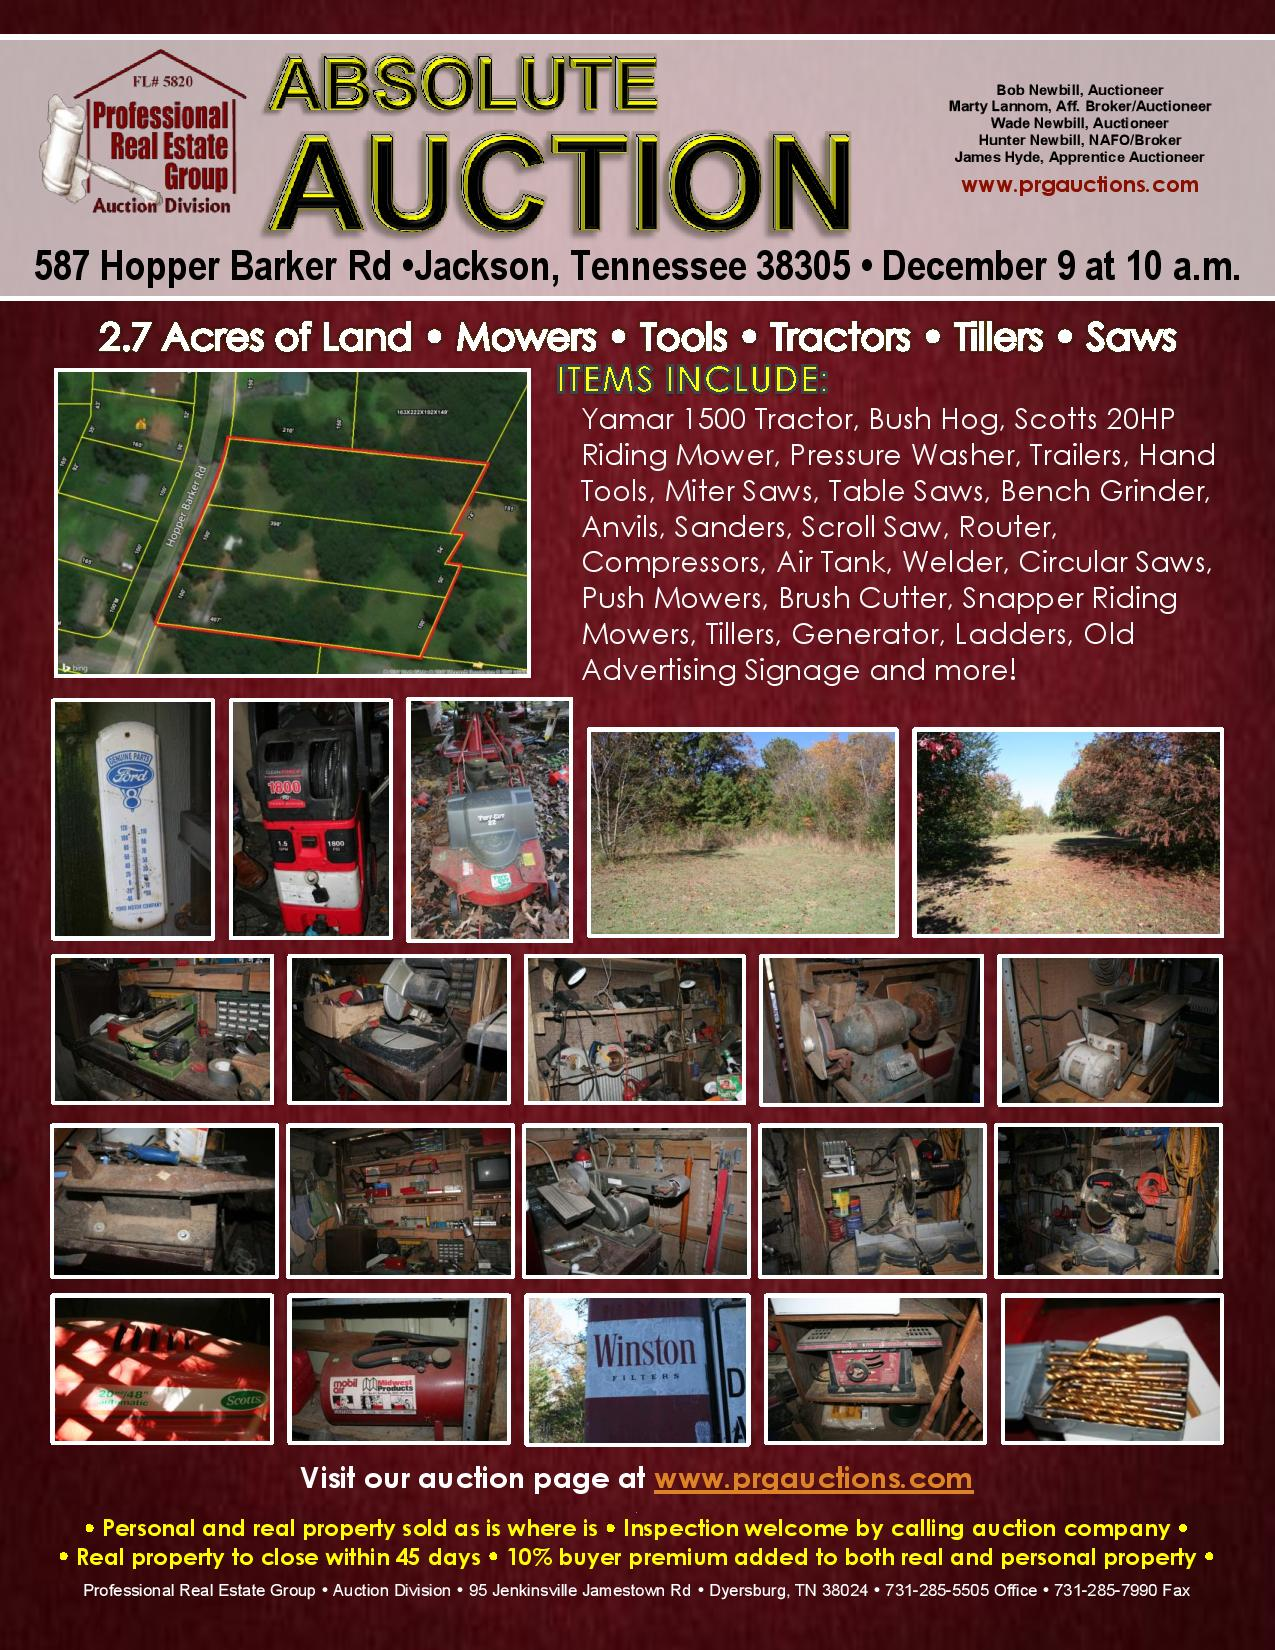 auction flyer 12 9 17 pg1 professional real estate group auction